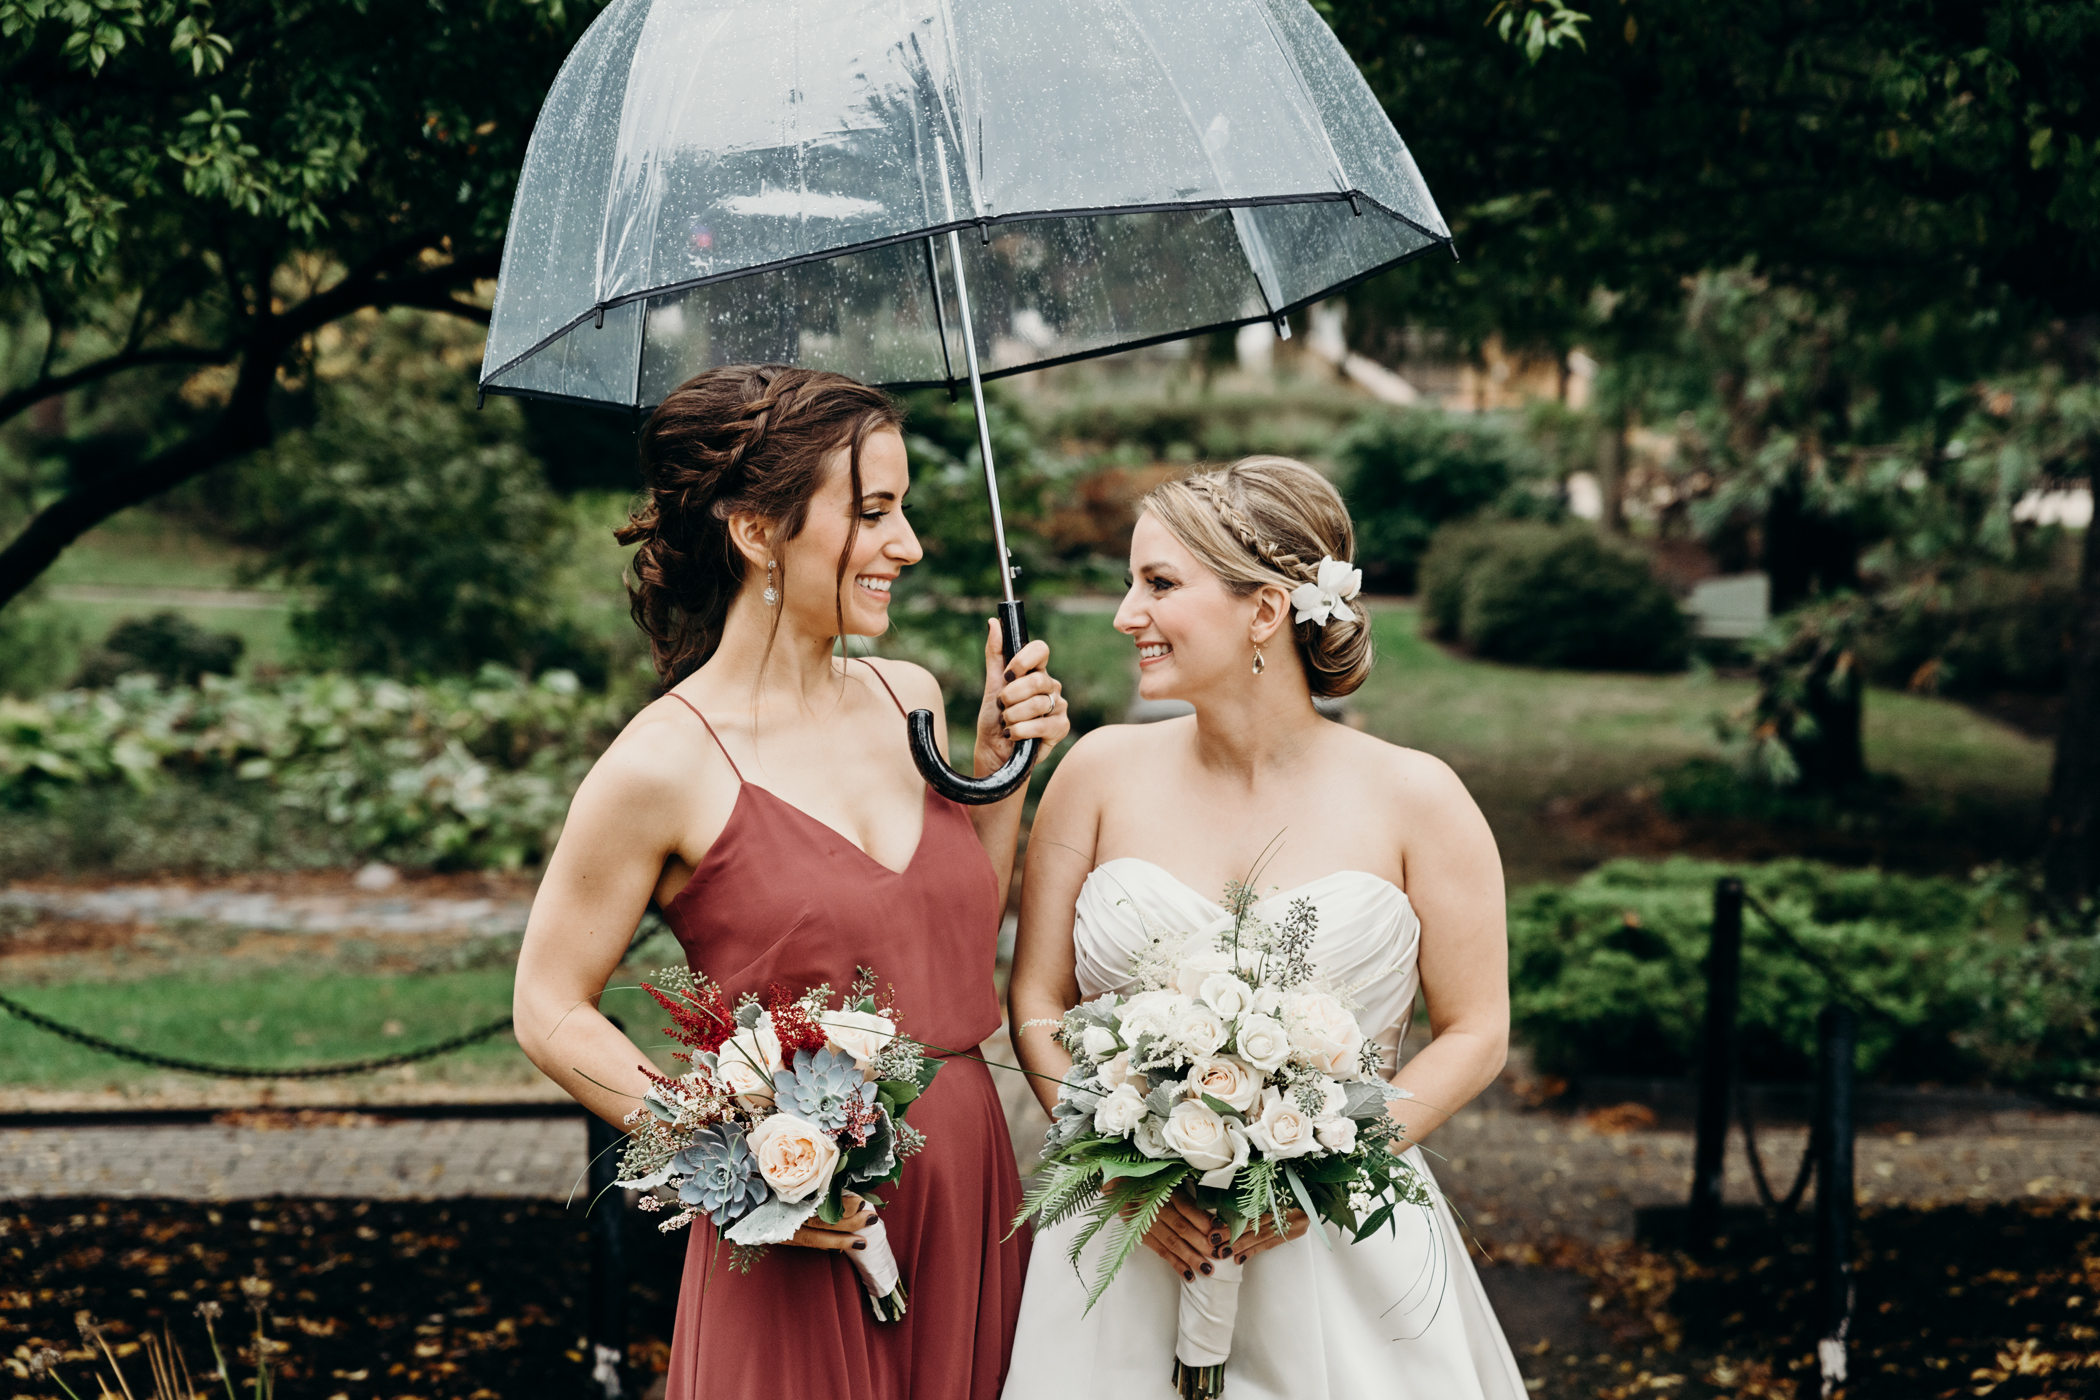 Bride and her maid of honor smile at each other